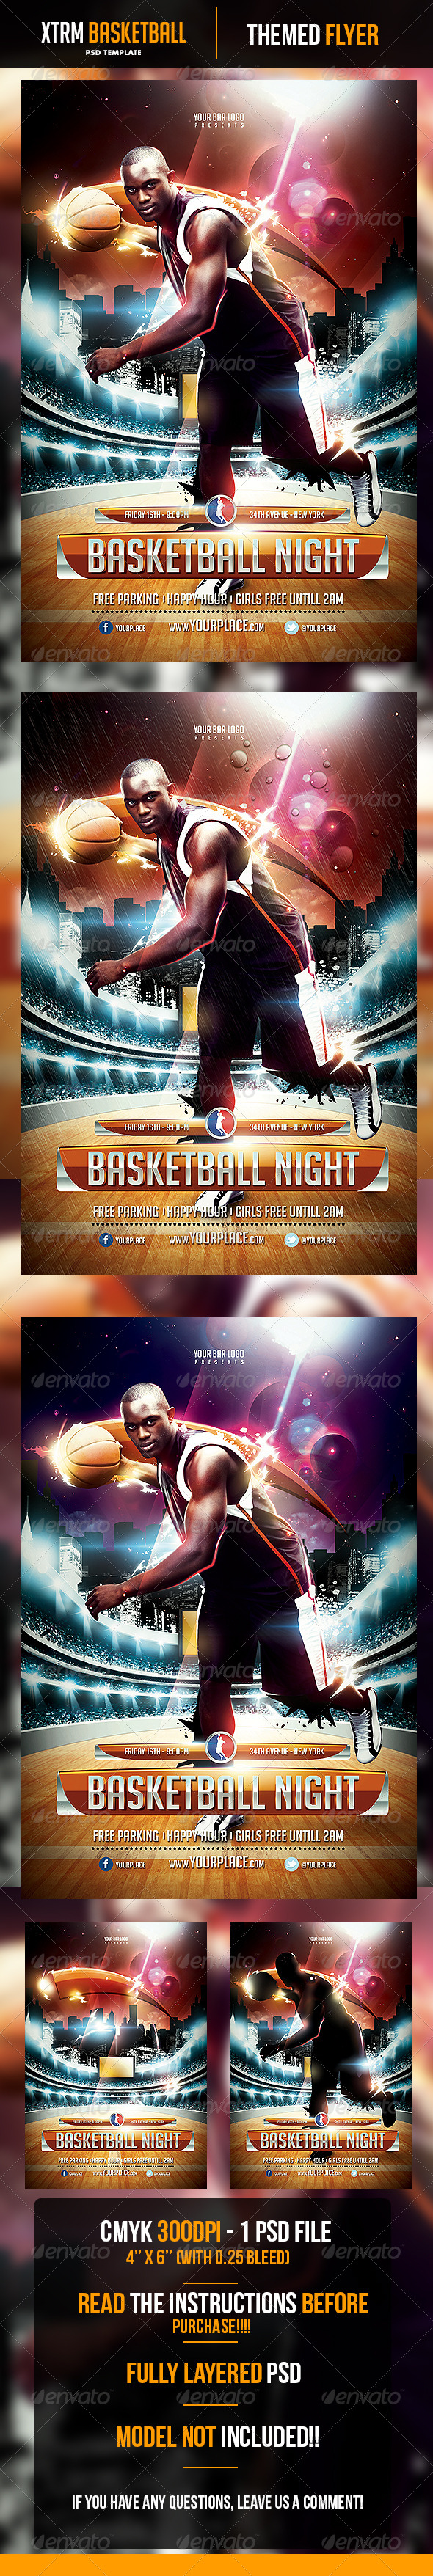 XTRM Basketball Night Flyer Template - Sports Events